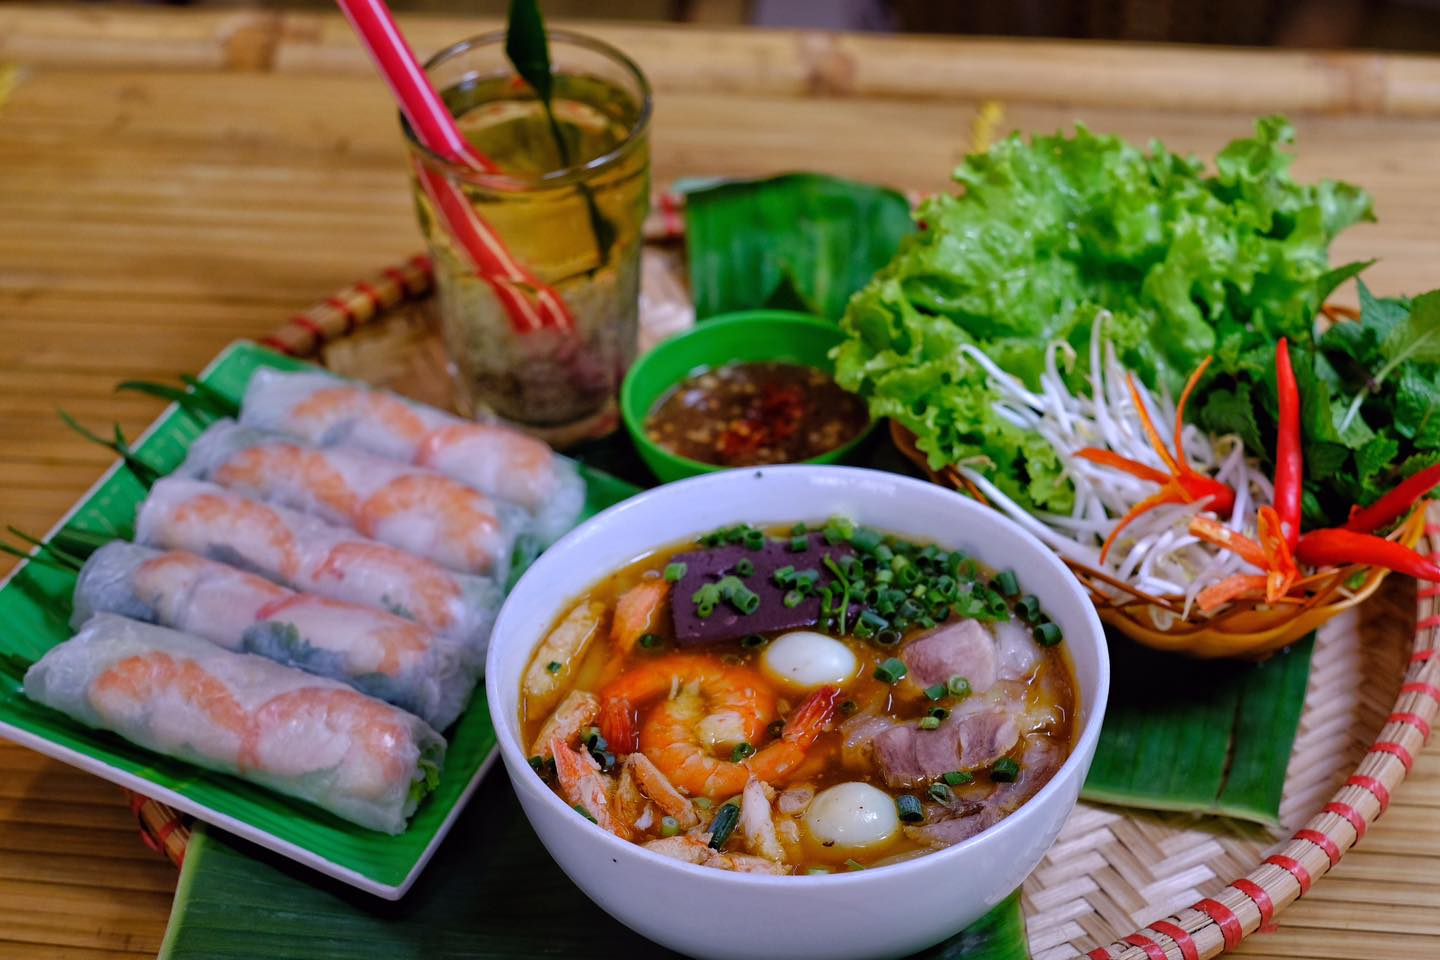 banh-canh-ghe-ut-coi